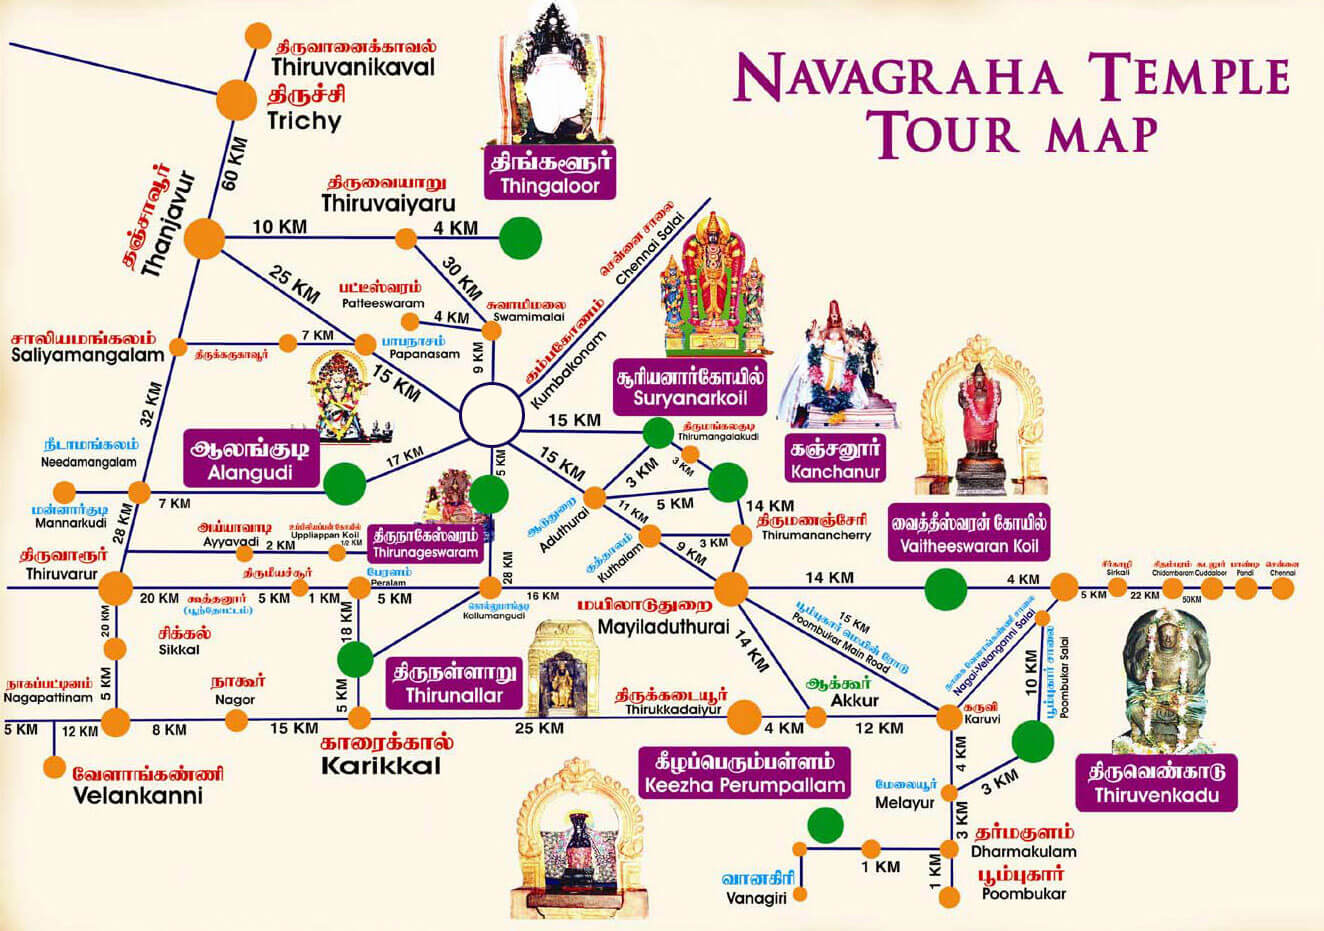 Navagraha Temple Route Map